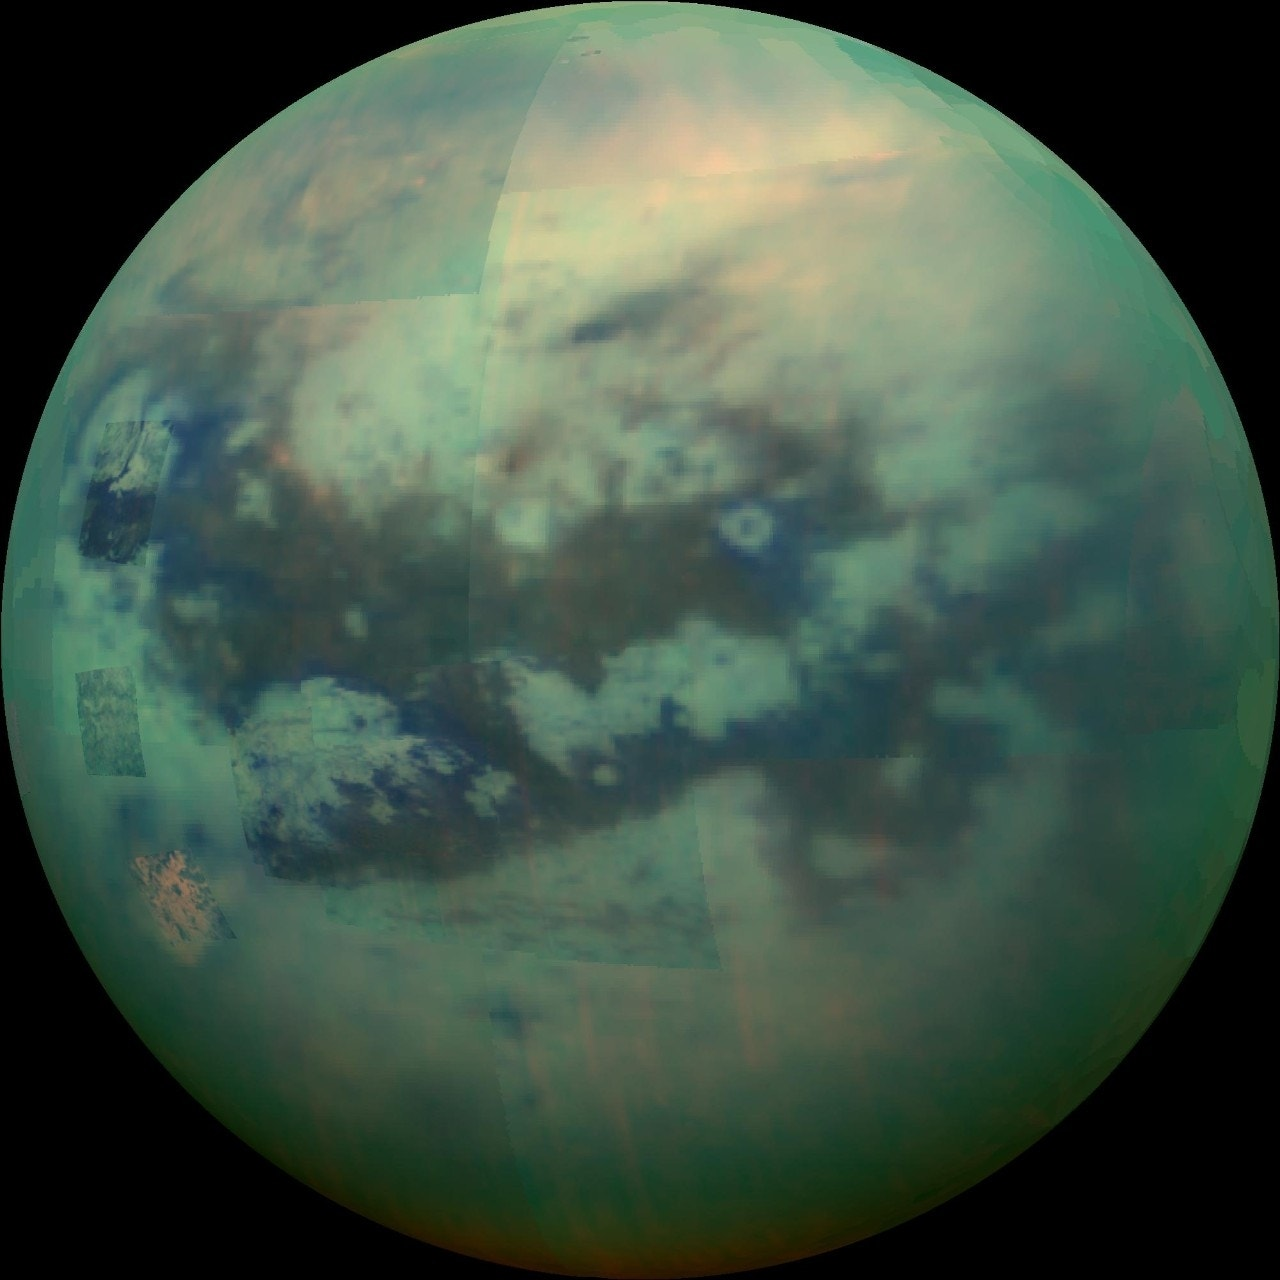 Saturn's largest moon Titan is bursting with color